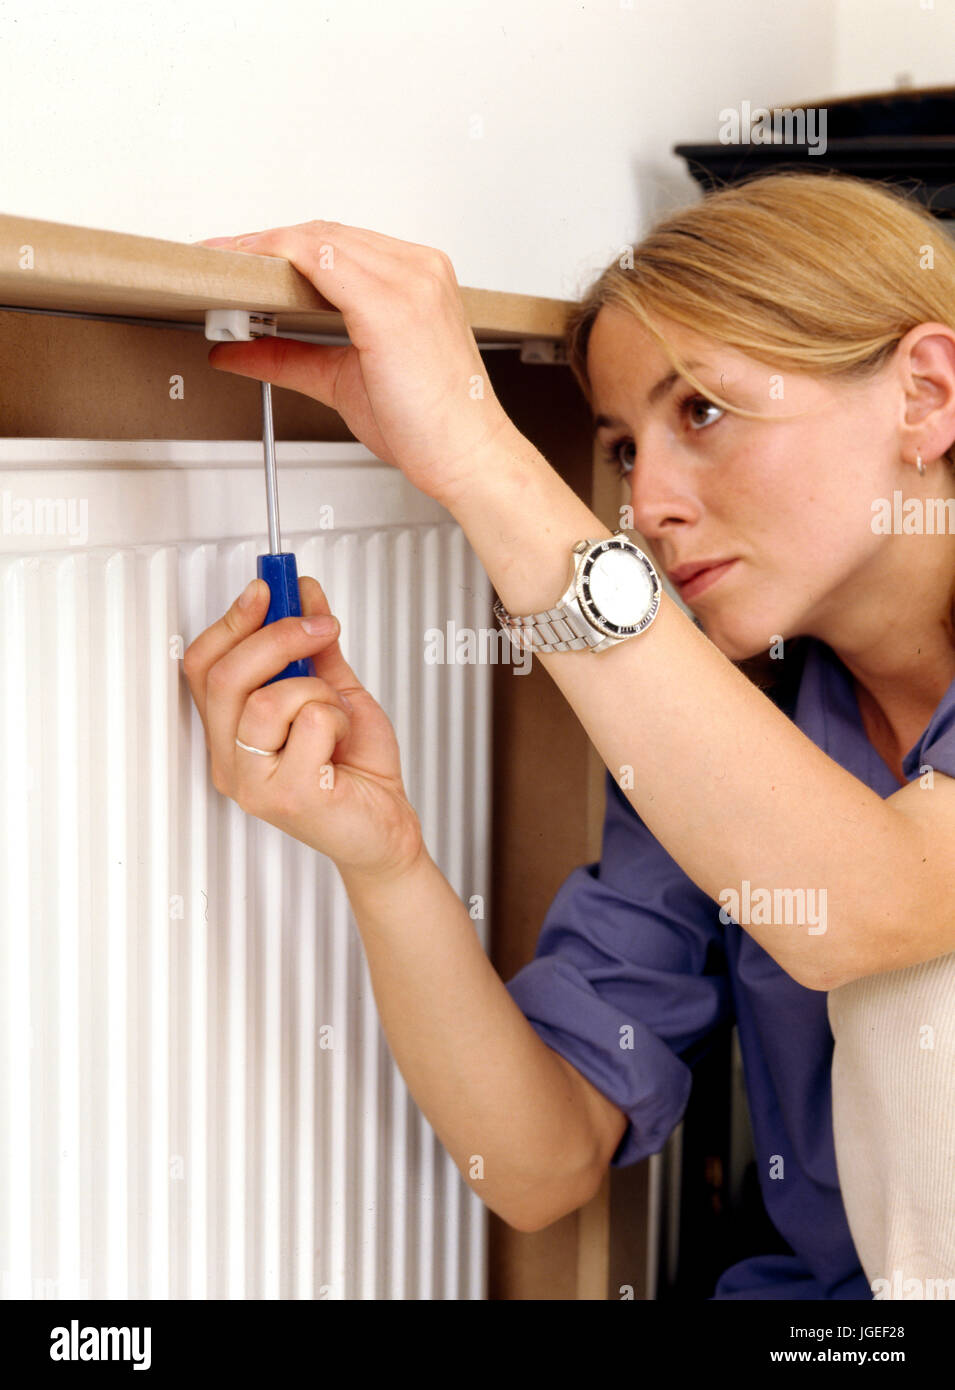 Woman fitting a radiator cover. Step x step craft & DIY projects - Stock Image